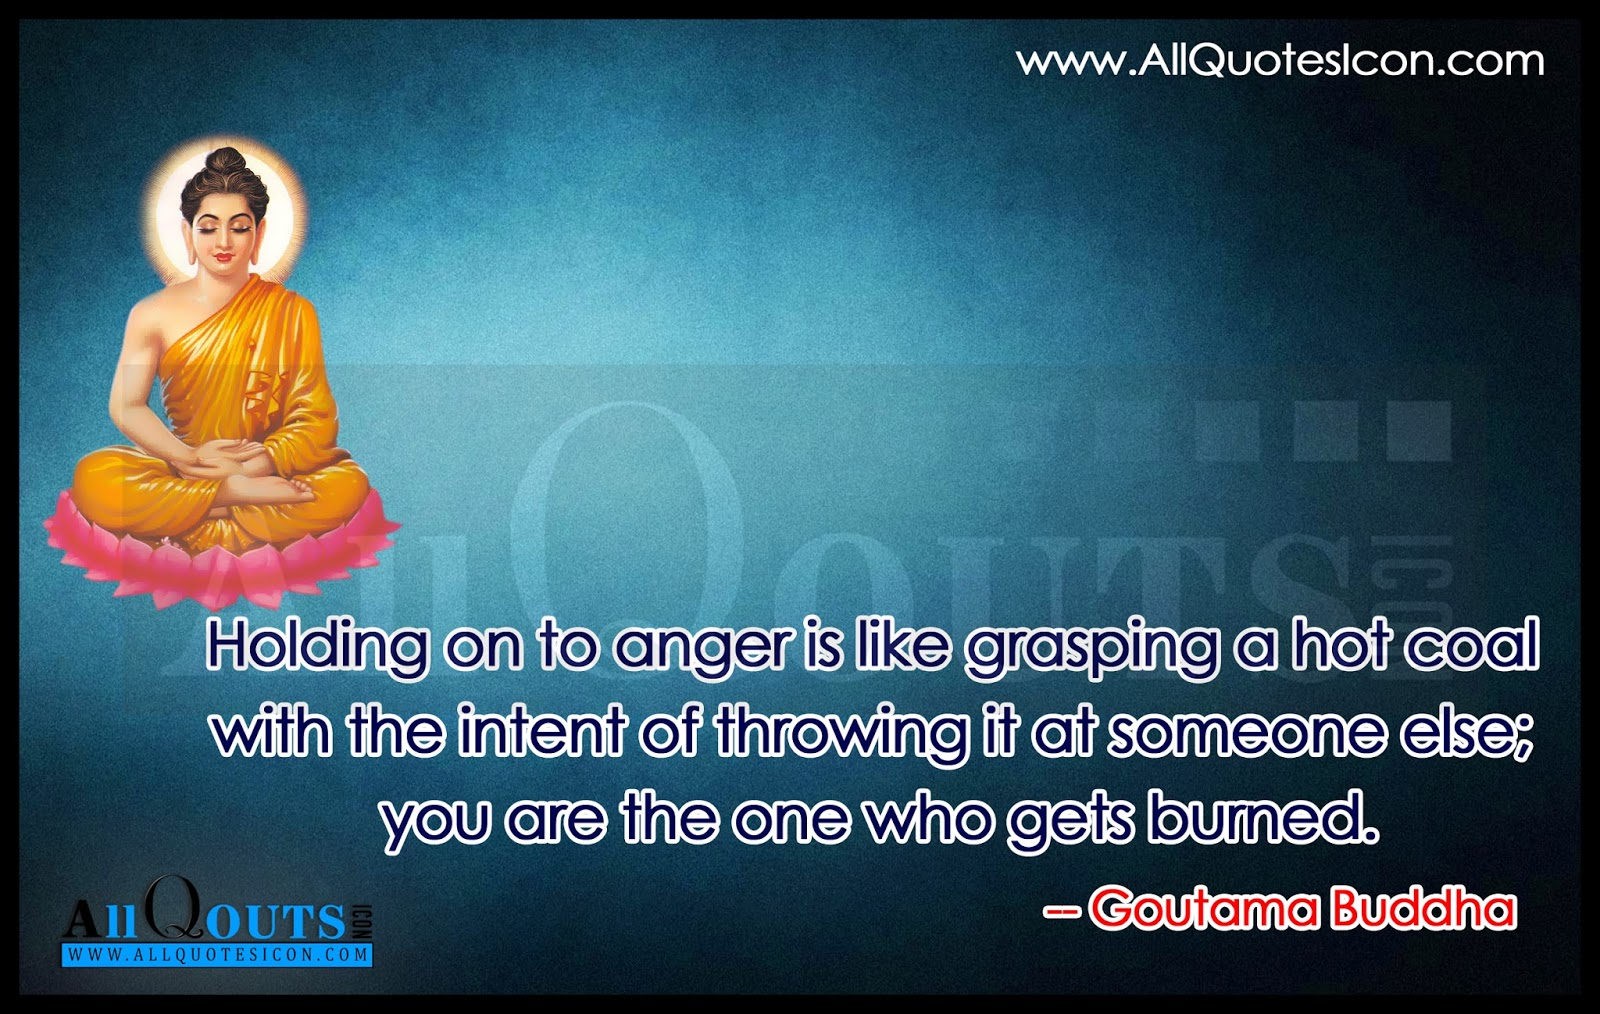 Goutama Buddha English QUotes Images Wallpapers Pictures Photos